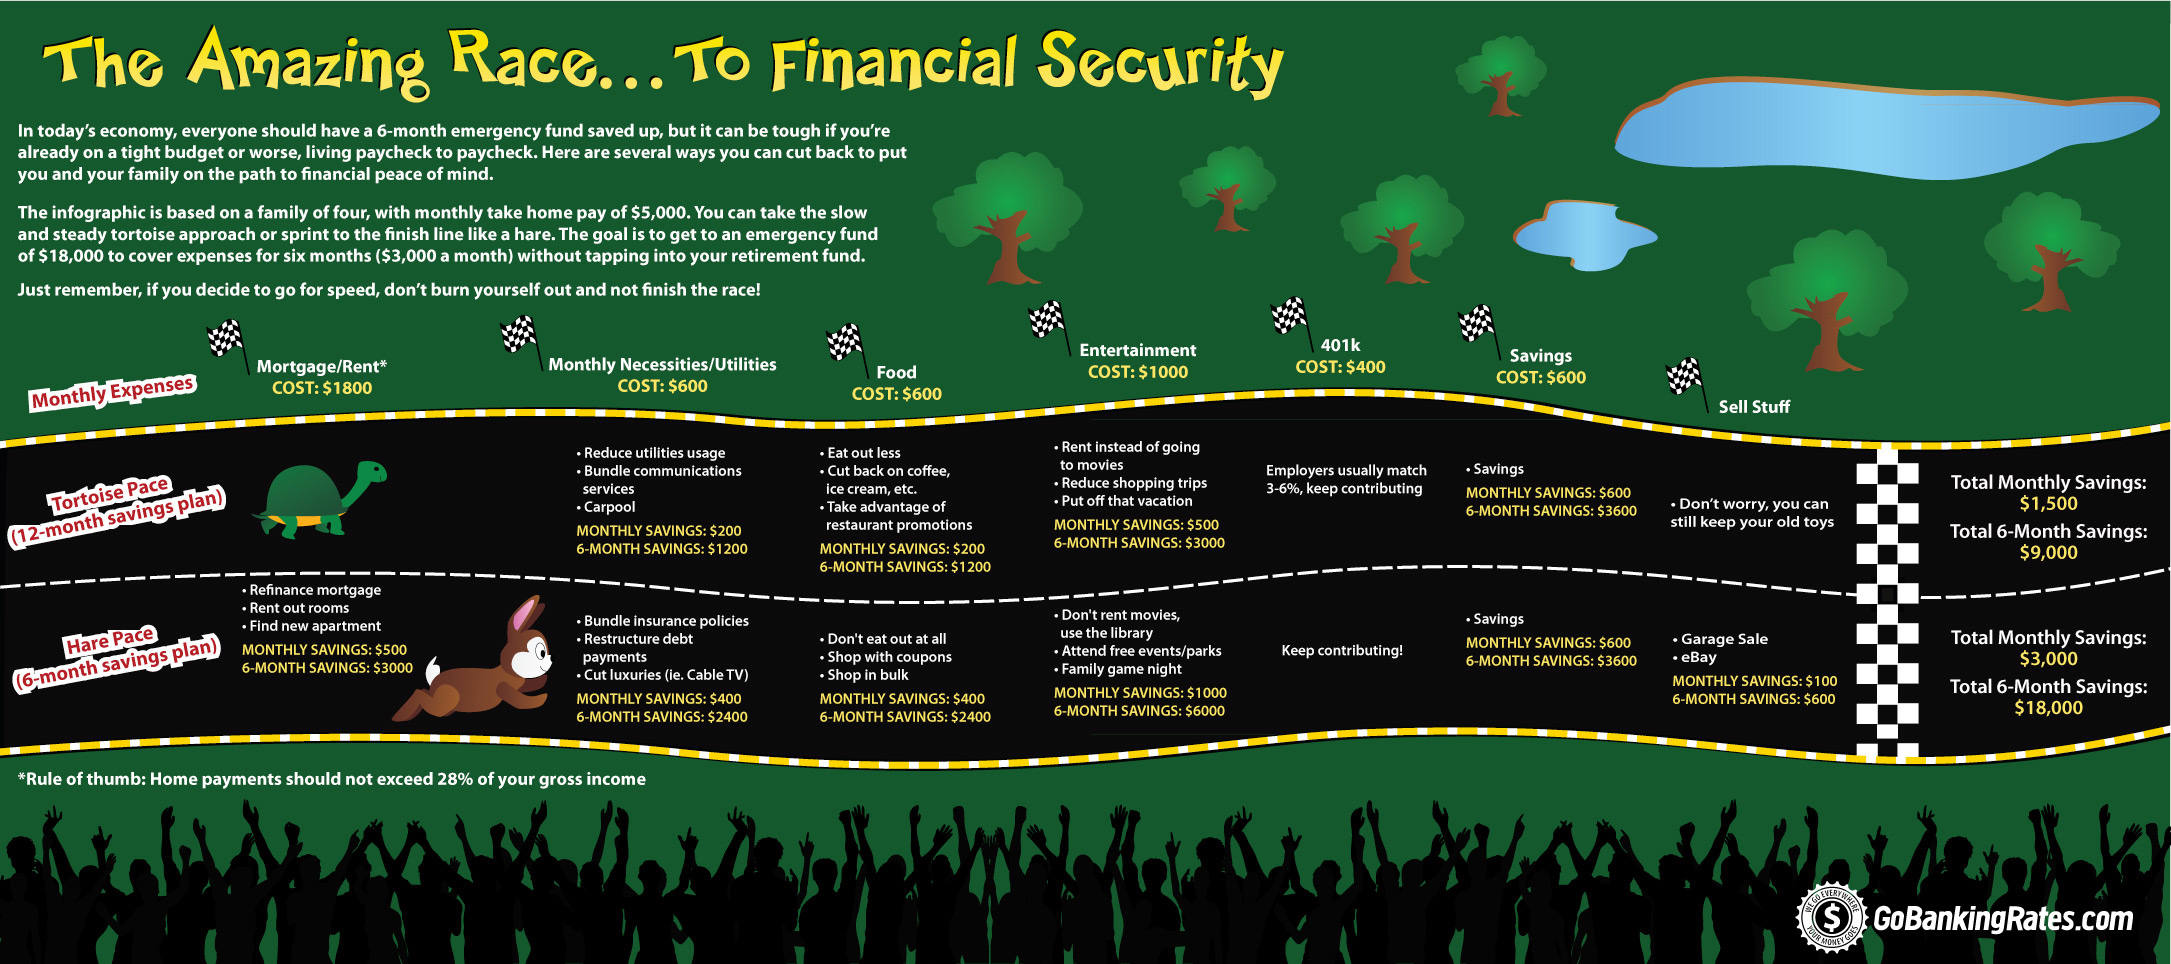 The Amazing Race to Financial Security (InfoGraphic)